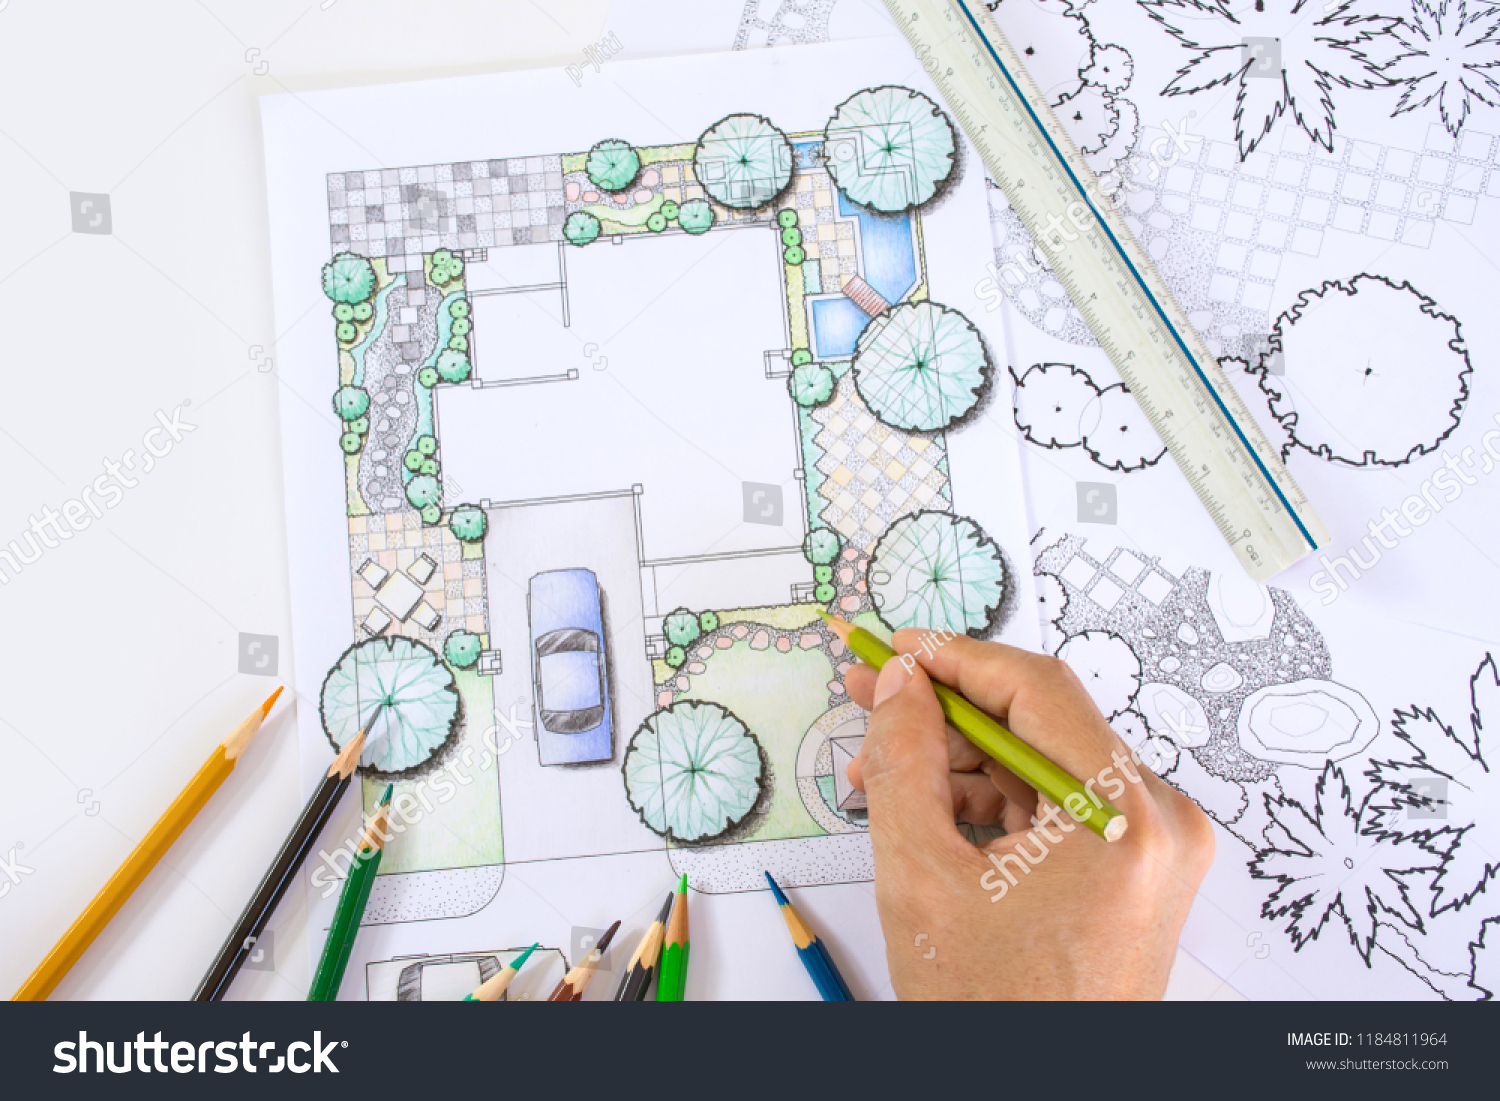 Layout Plan Home Landscape Design Garden Stock Photo Edit Now 1184811964